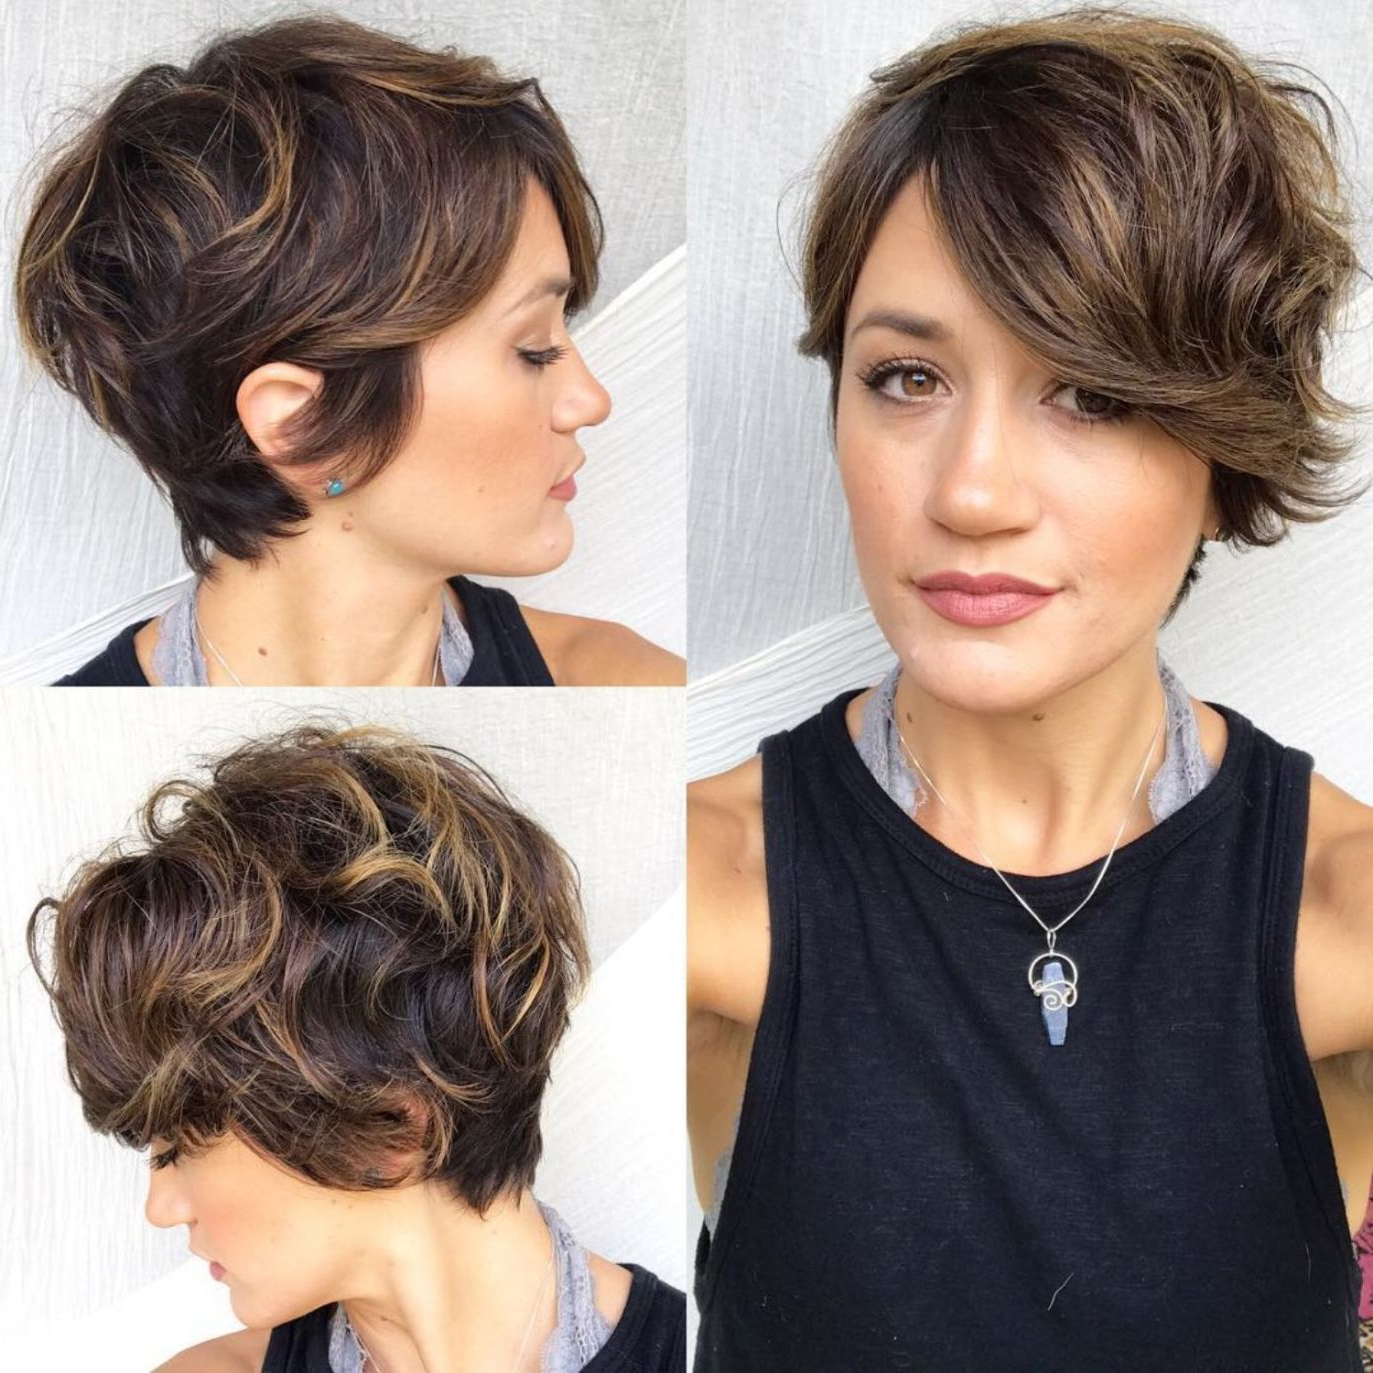 60 Short Shag Hairstyles That You Simply Can't Miss In 2019 In Long Curly Pixie Haircuts With Subtle Highlights (Gallery 1 of 20)